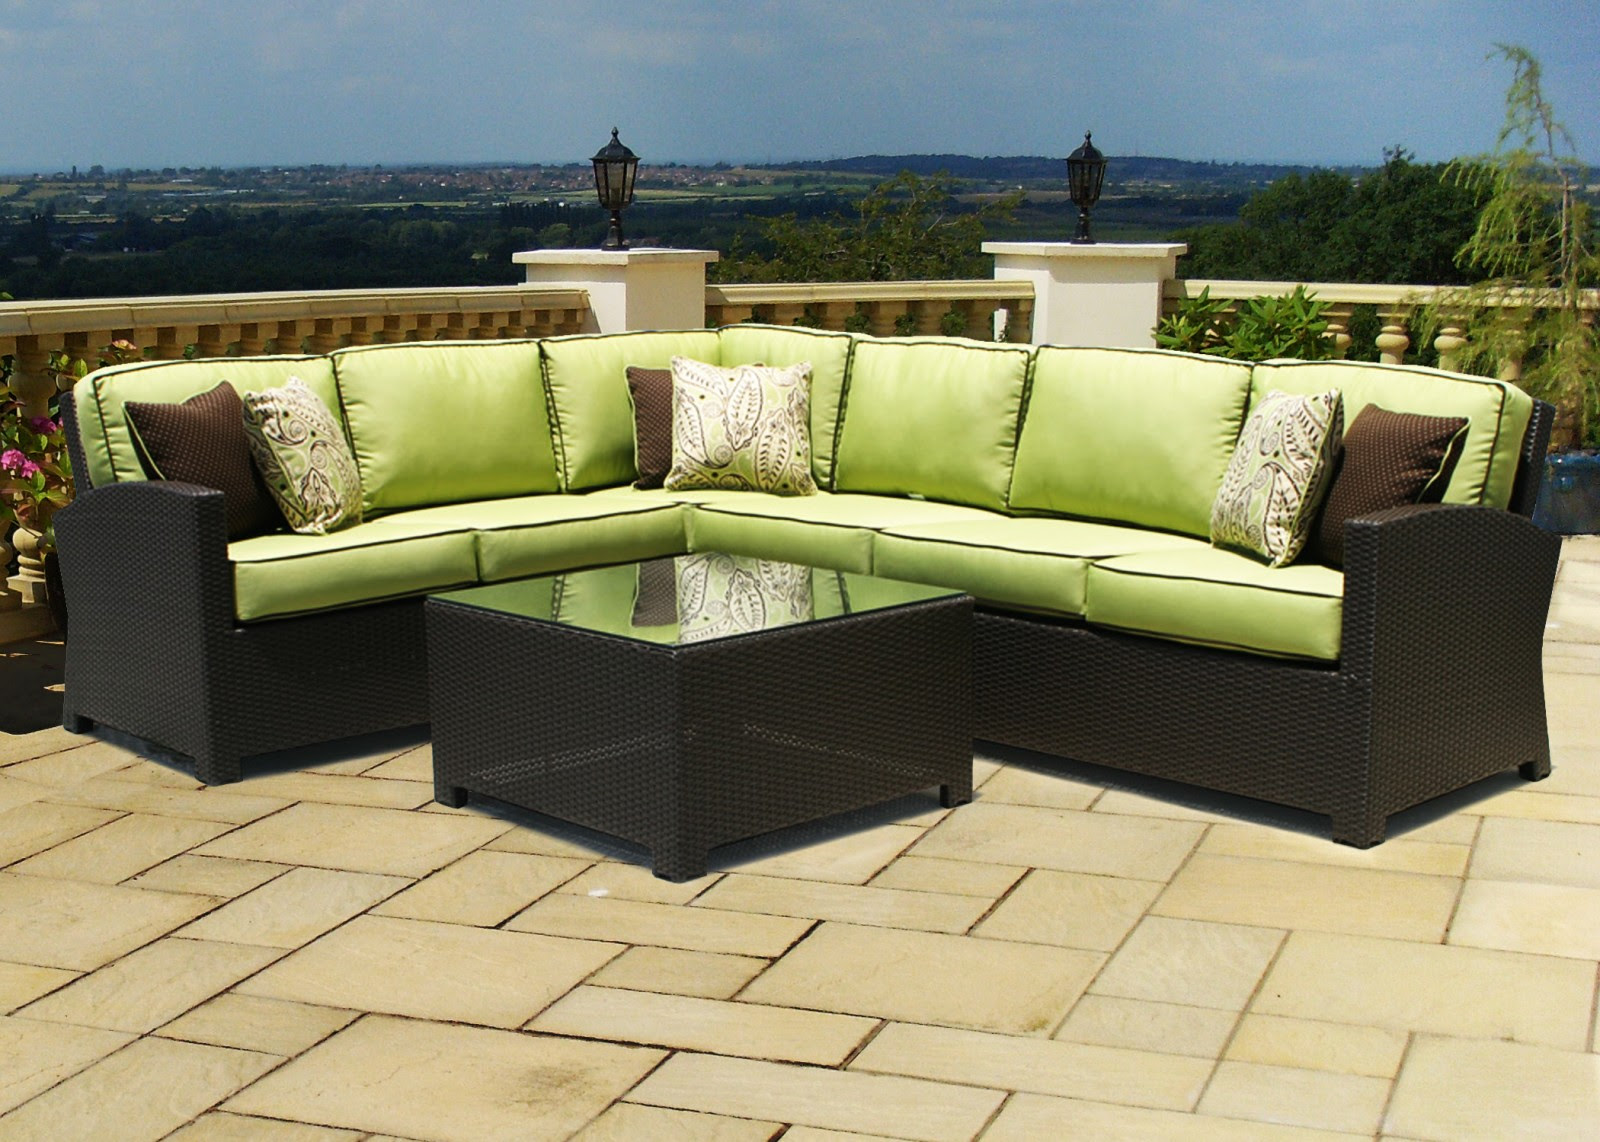 Outdoor Sectionals   Hot Tubs, Fireplaces, Patio Furniture ...